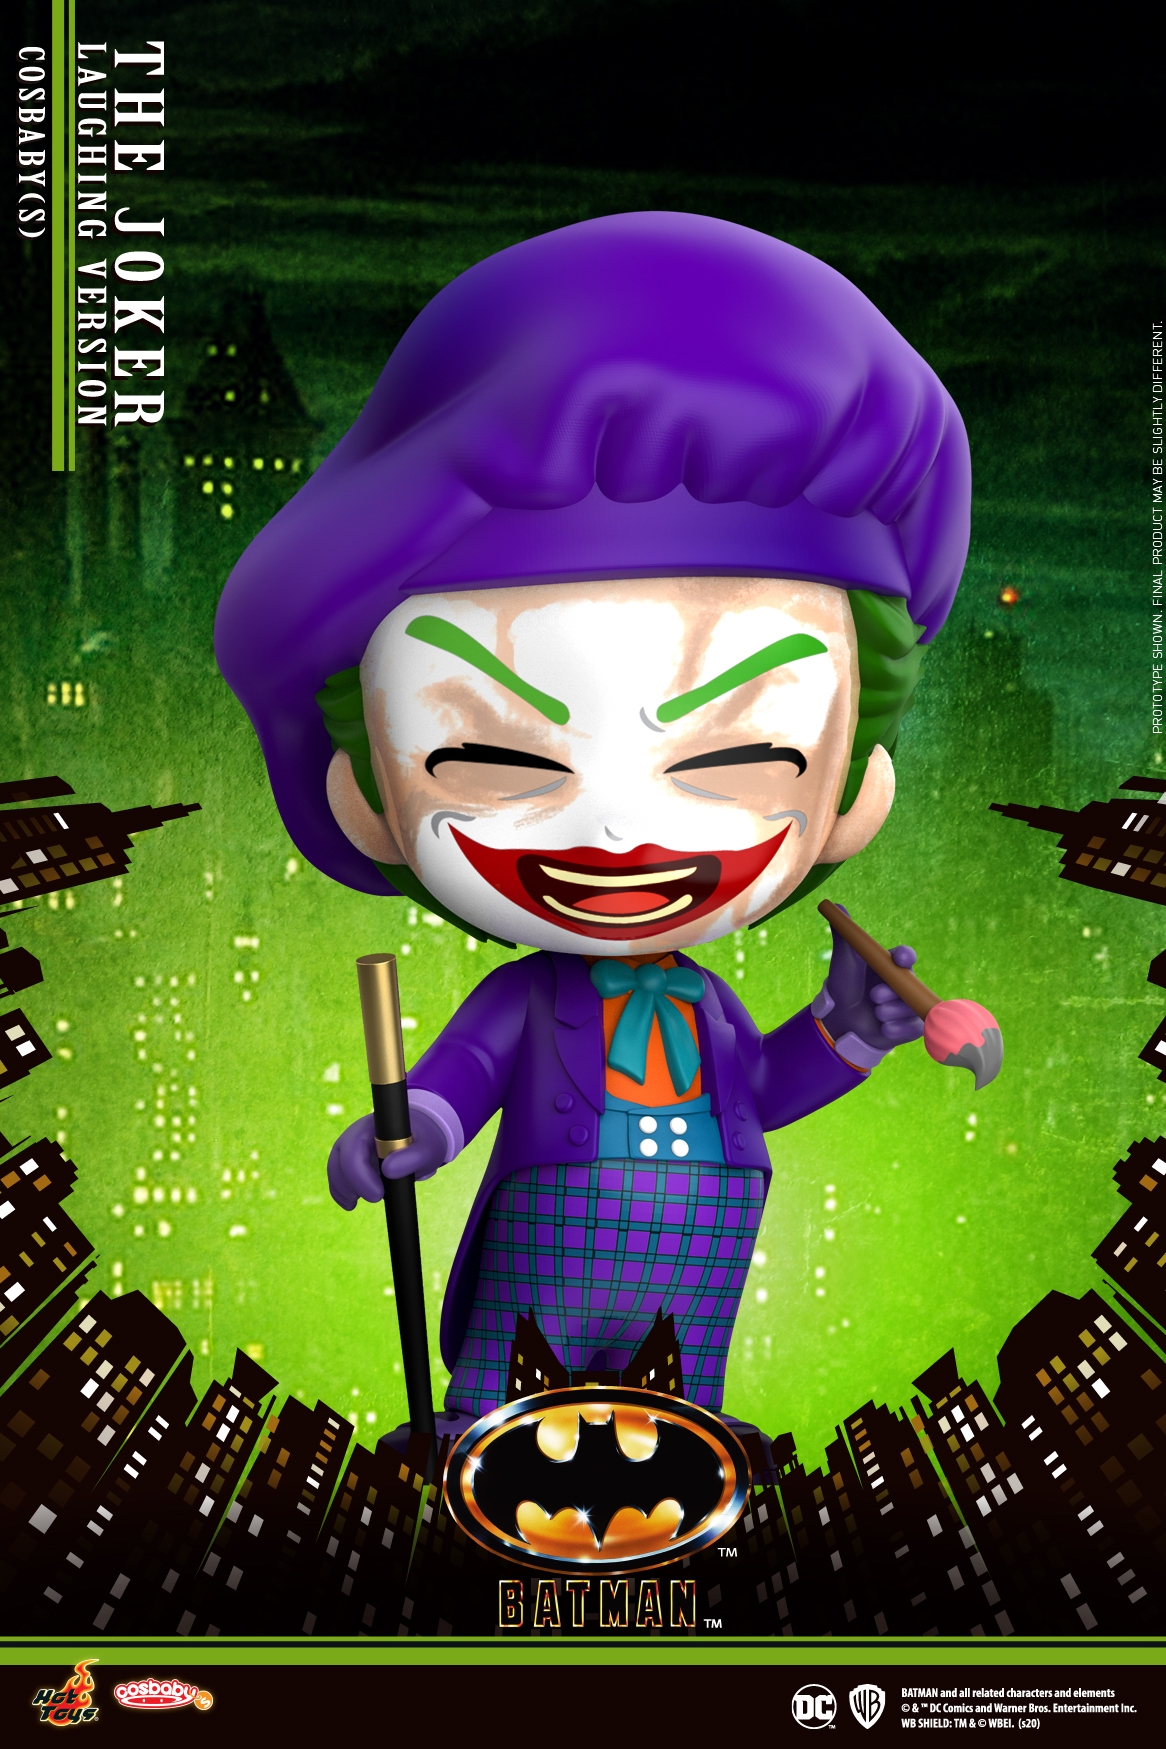 Hot Toys - Batman (1989) - The Joker (Laughing Version) Cosbaby_PR1.jpg